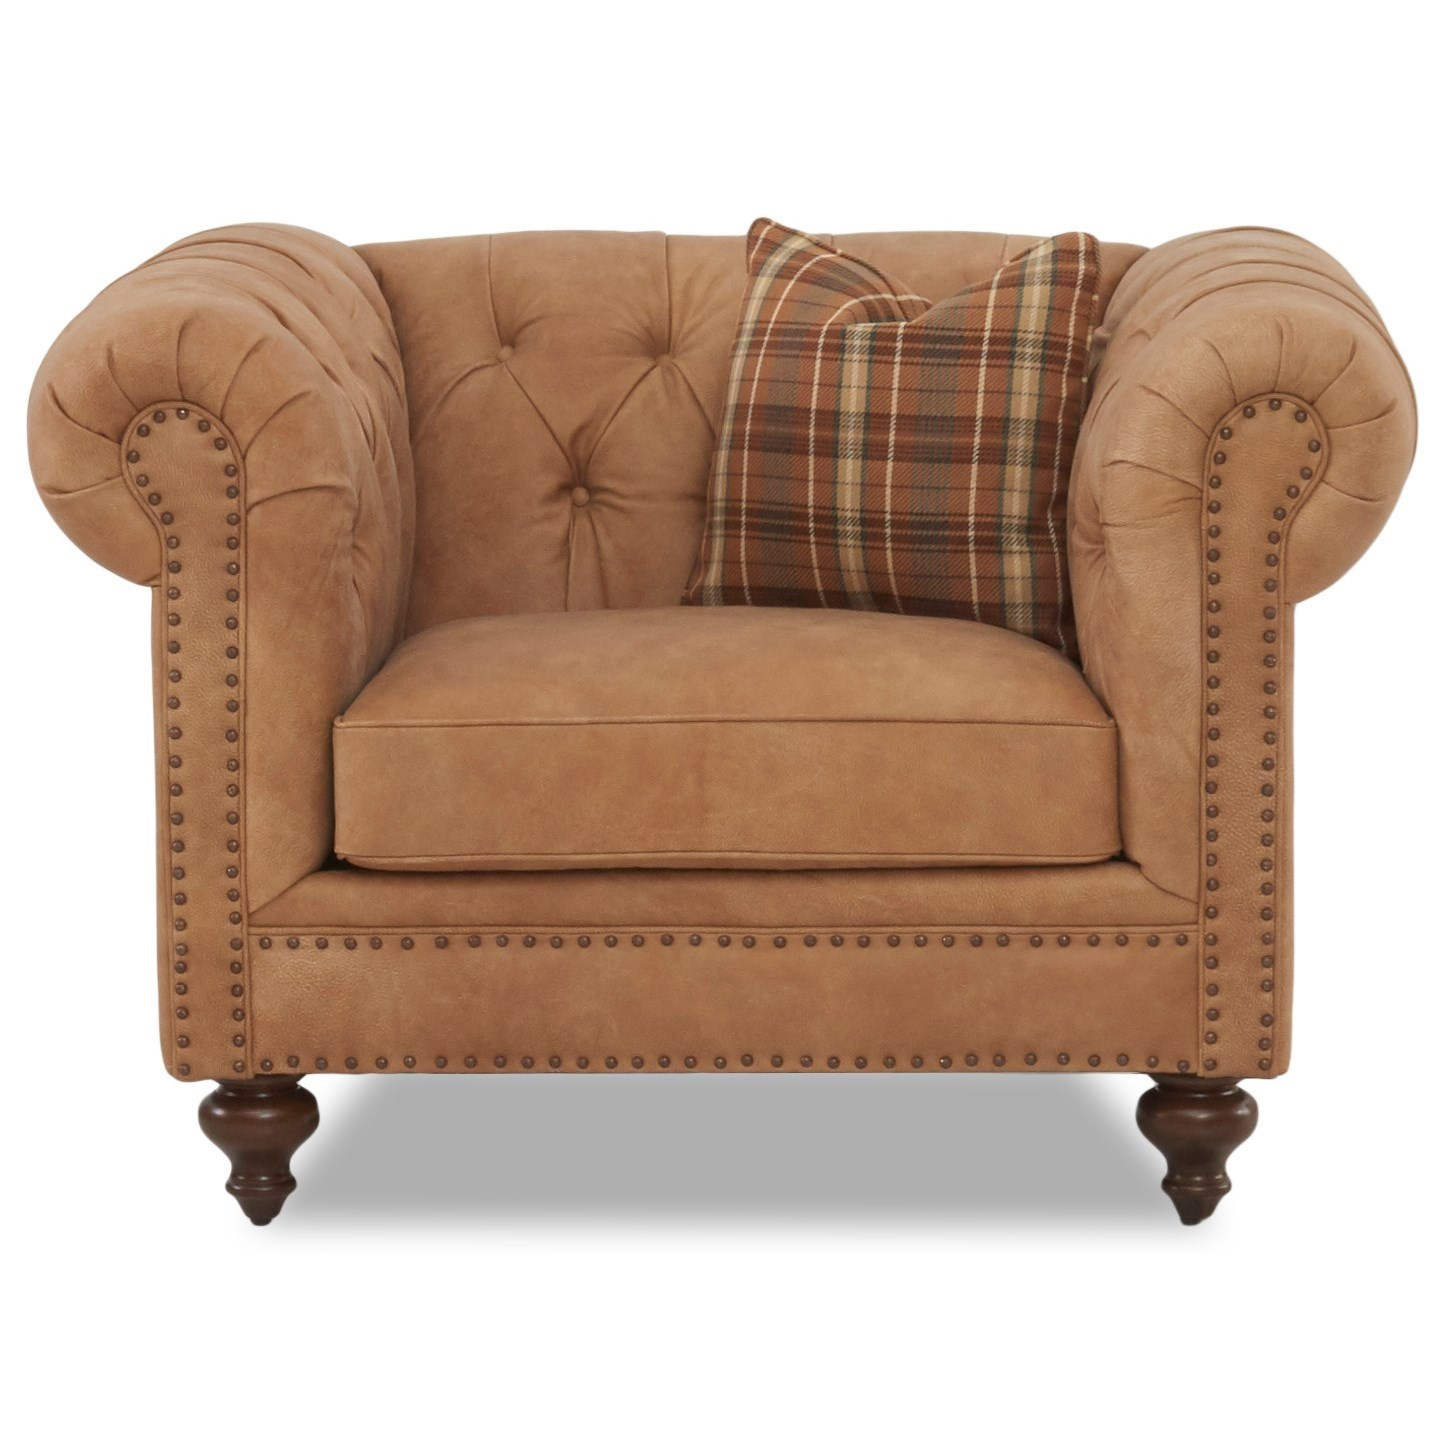 tufted nailhead chair patterned recliner chairs elliston place charlotte traditional and 1 2 with nailheads by